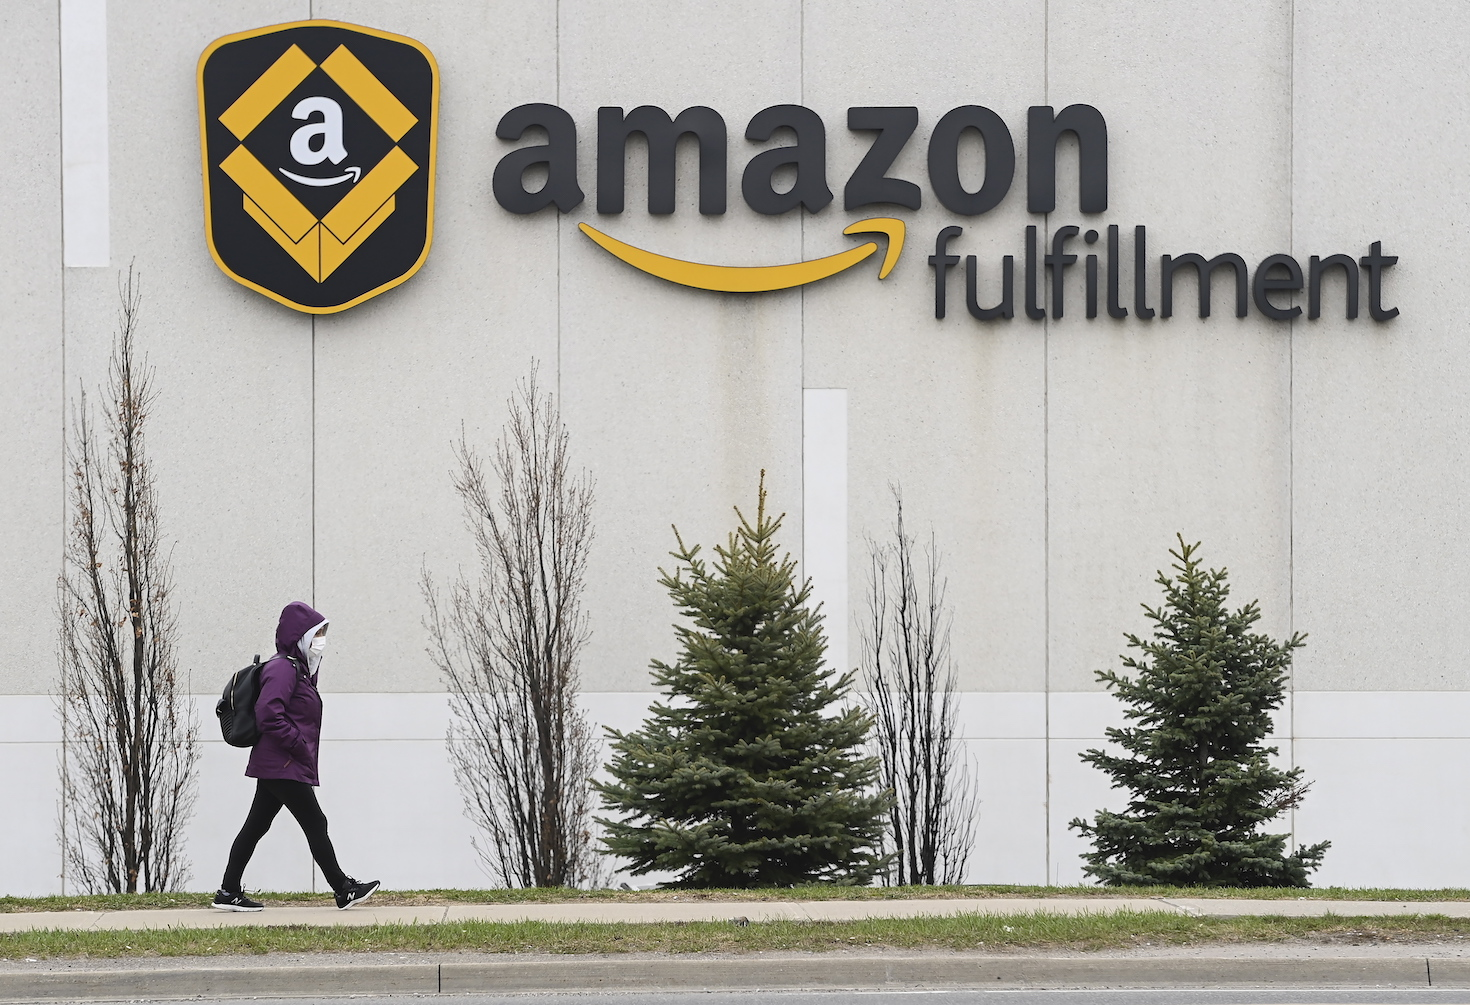 Net sales increased 44 percent to $108.5 billion in the first quarter, compared with $75.5 billion in first quarter 2020, and coming in above Amazon's initial guidance of $100 million to $106 million.